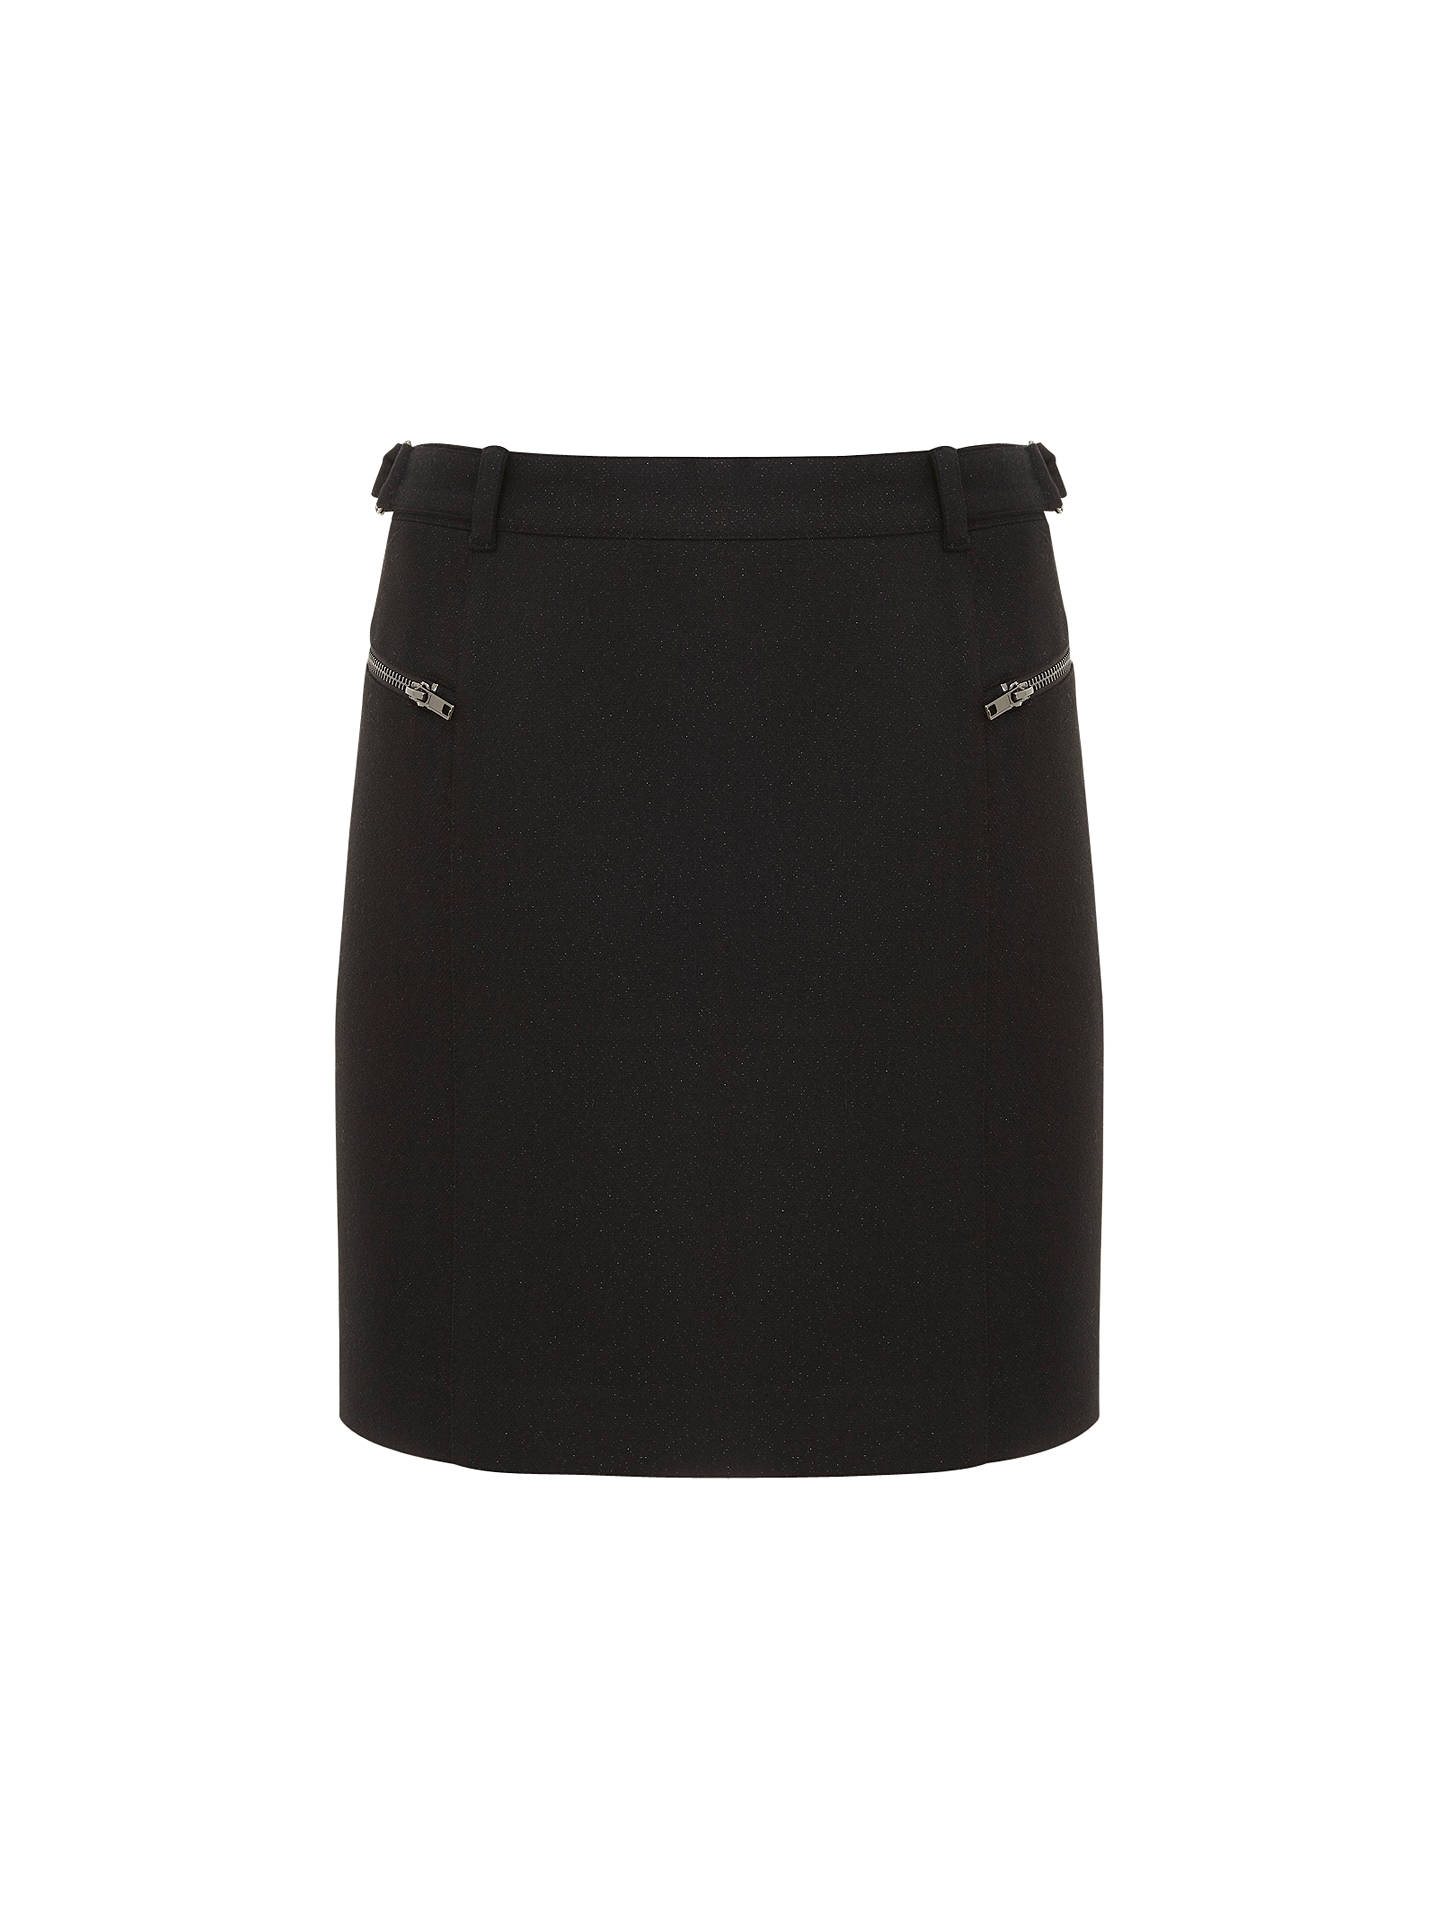 6c72b65025 Buy Mint Velvet Cargo Skirt, Black, 8 Online at johnlewis.com ...